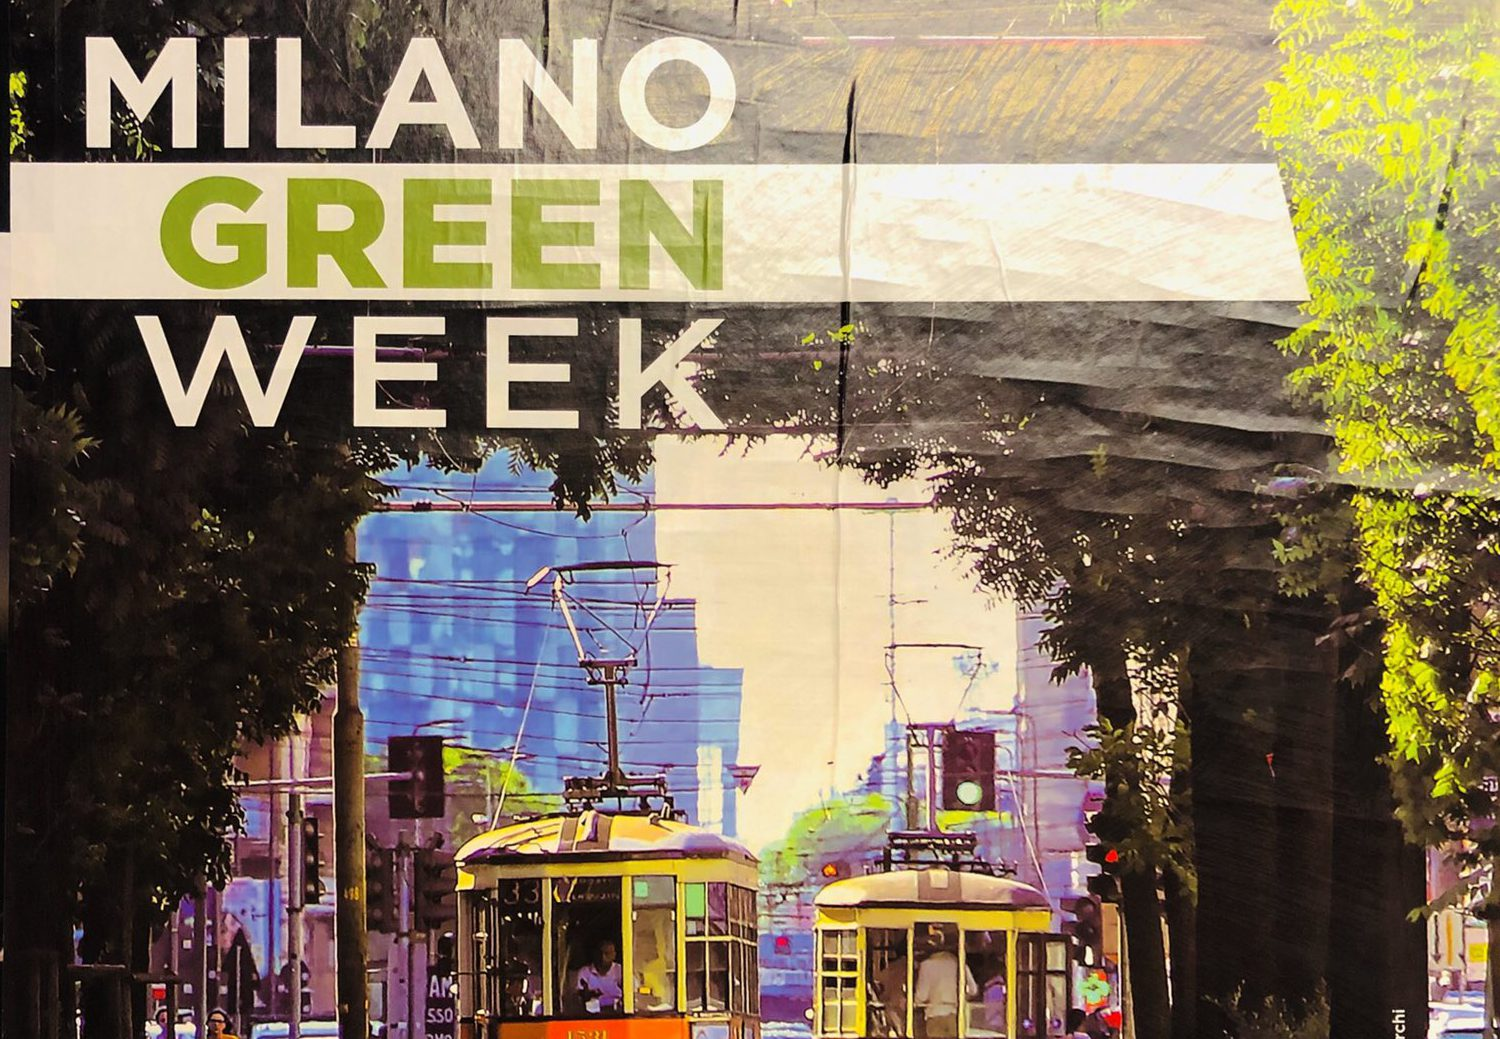 milano green week workshop meteo